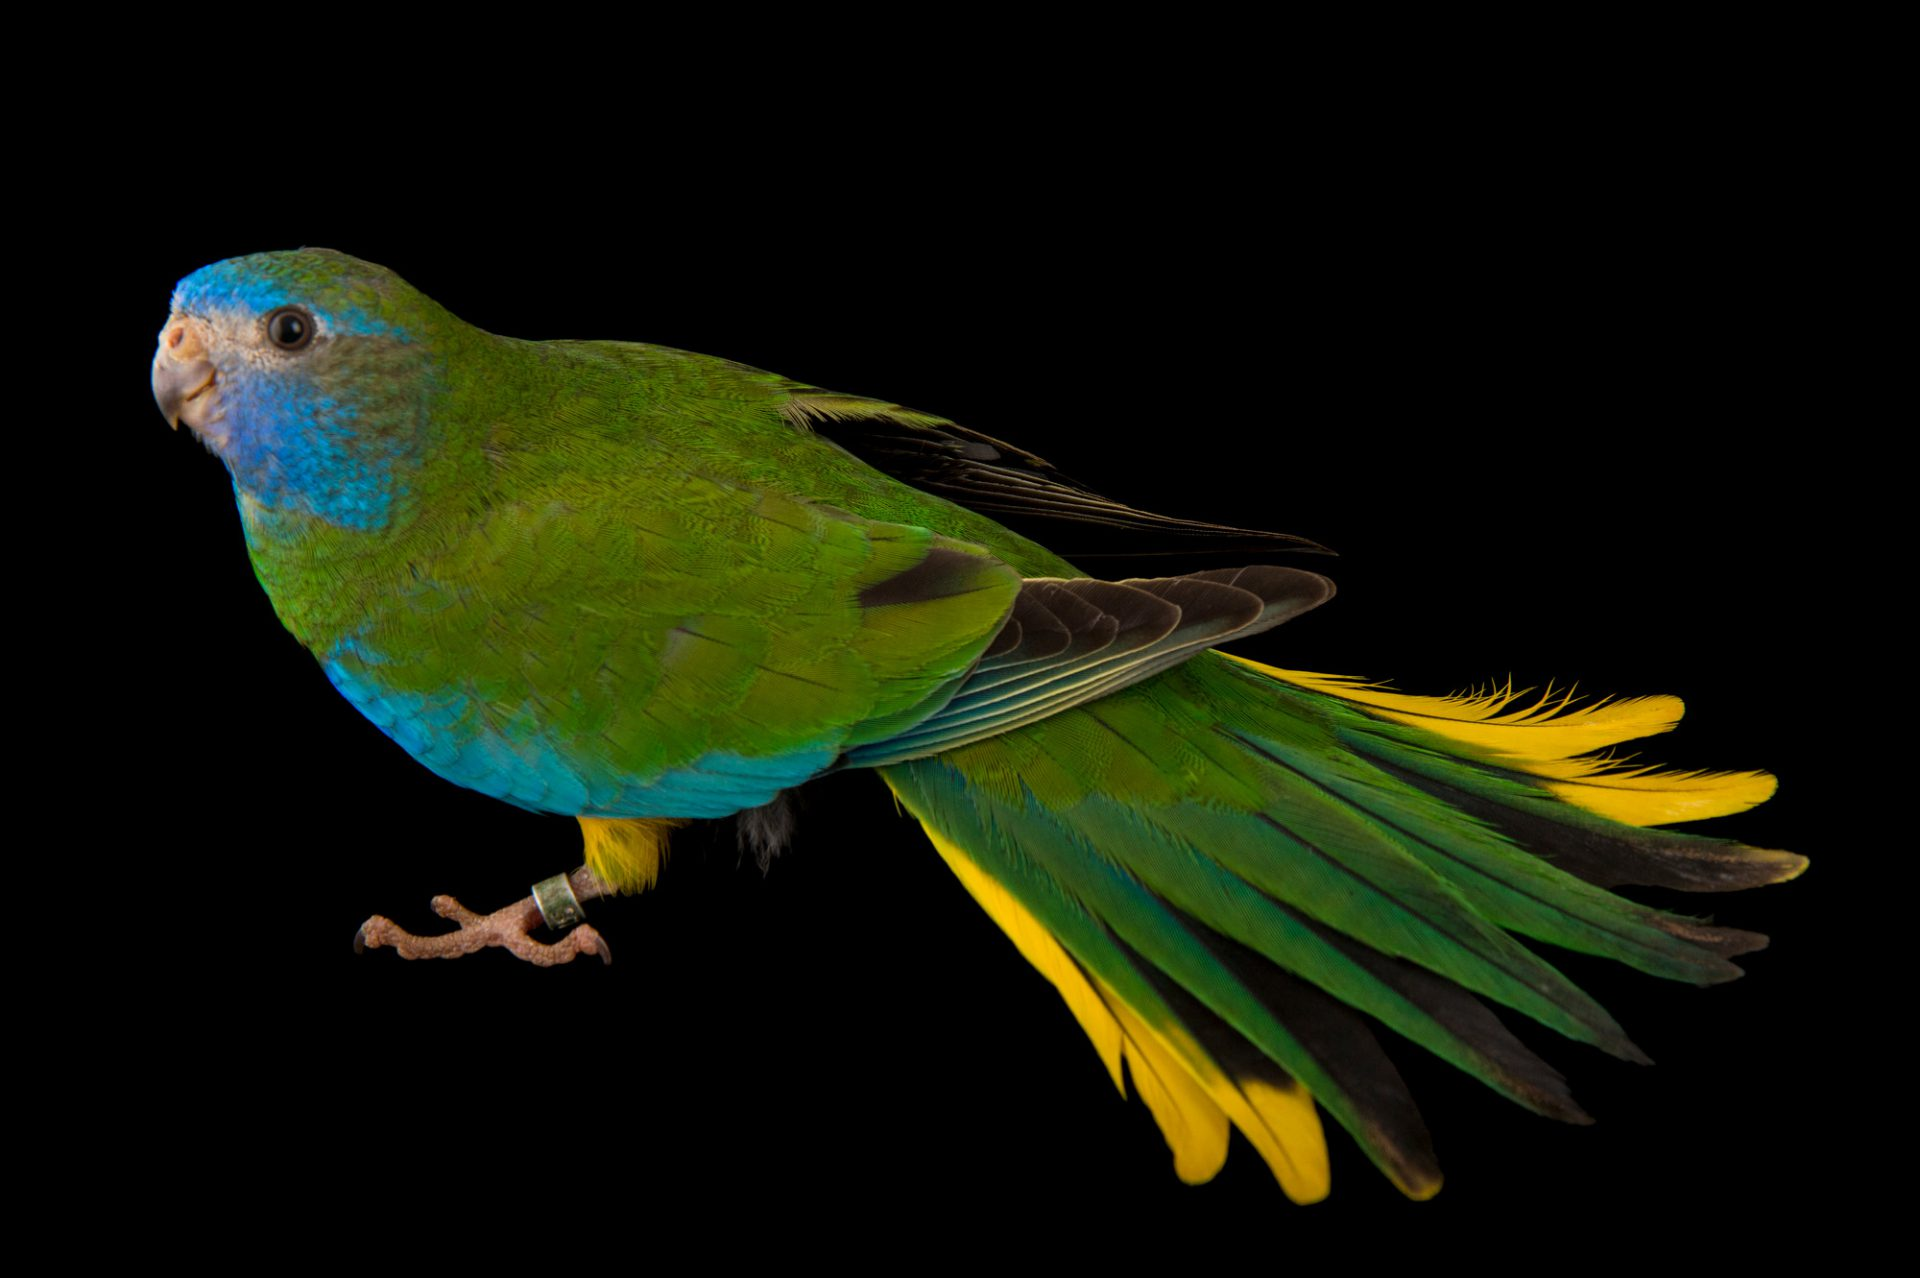 Picture of a federally endangered, female scarlet-chested parrot (Neophema splendida) at Healesville Sanctuary.